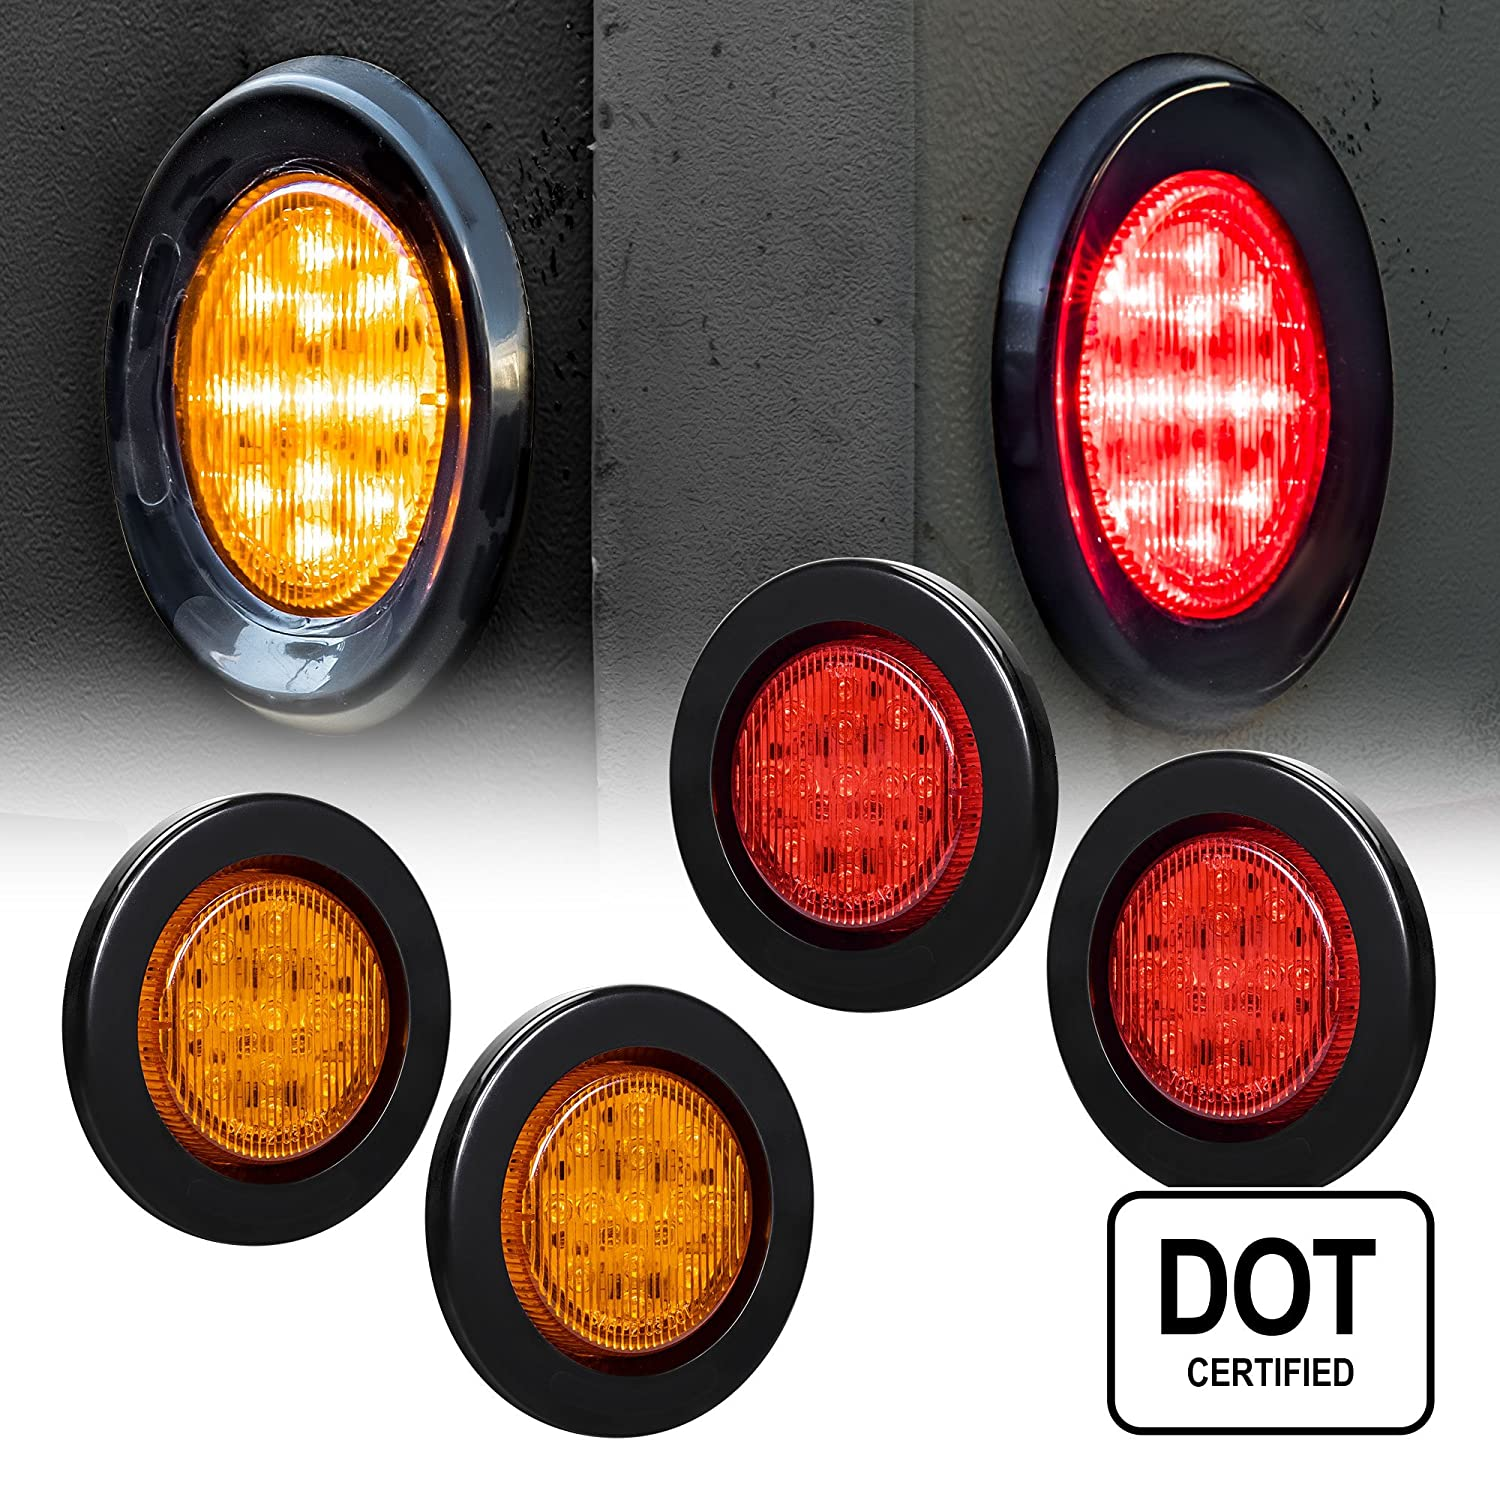 8 PC 2.5' Round LED Light Side Marker- Two in One Reflector Light [Polycarbonate Reflector] [13 LEDs] [Rubber Grommet] [IP 67] for Trailers - 4 Red and 4 Amber ONLINE LED STORE